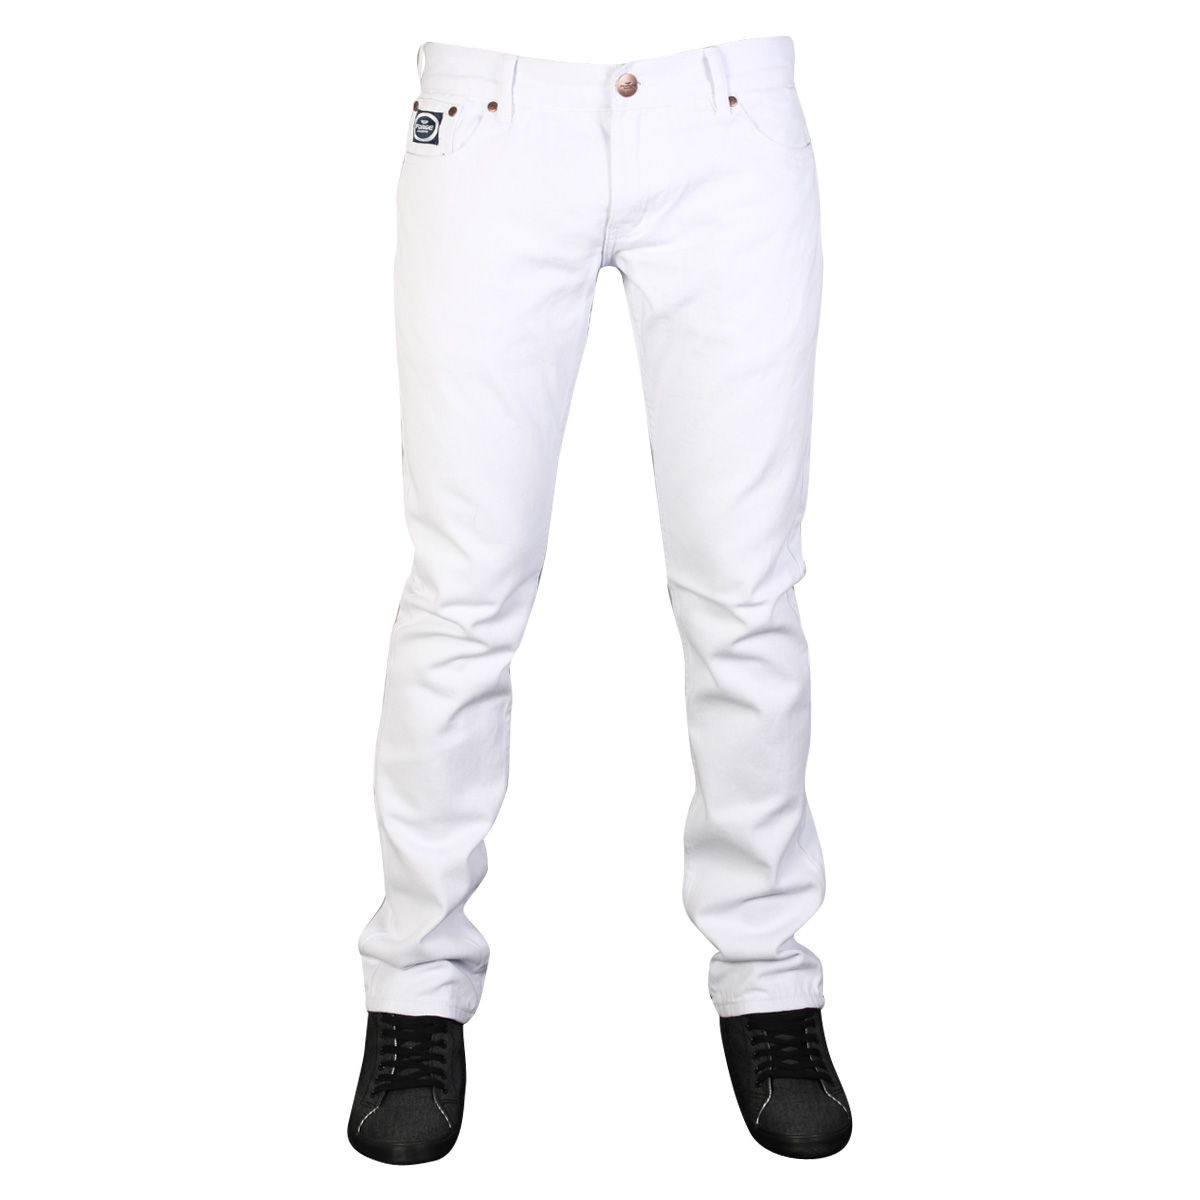 CLEARANCE MENS WHITE FORGE BY KAM F102 DESIGNER SKINNY FIT DENIM ...